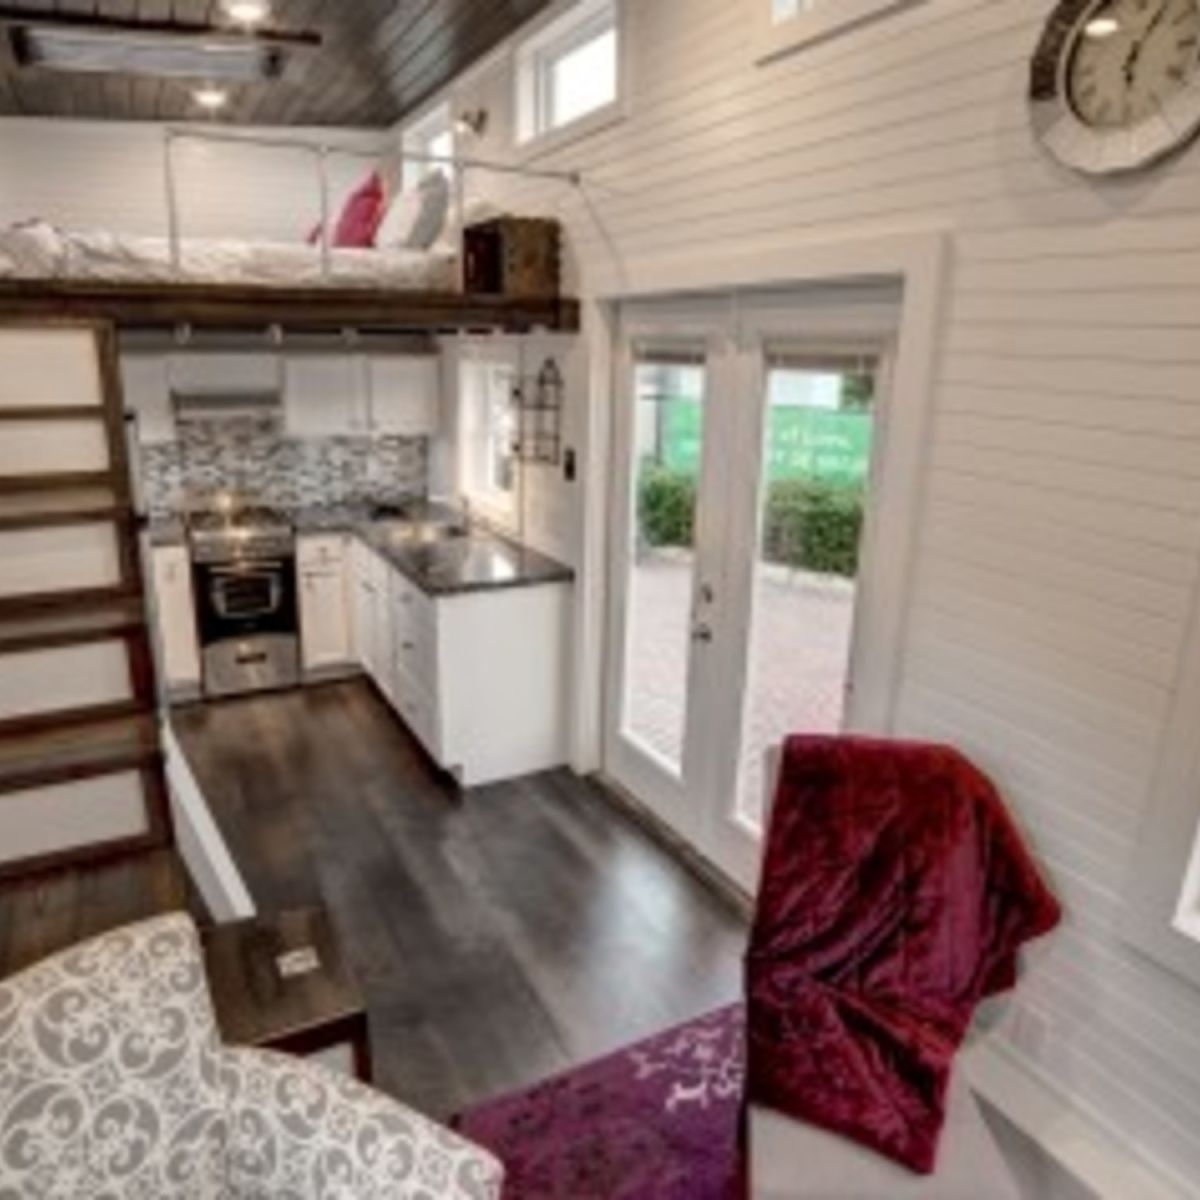 Rvia certified tiny towable freedom renew current land lease or rvia certified tiny towable freedom renew current land lease or relocate tiny house for sale in flat rock north carolina tiny house listings 1betcityfo Image collections